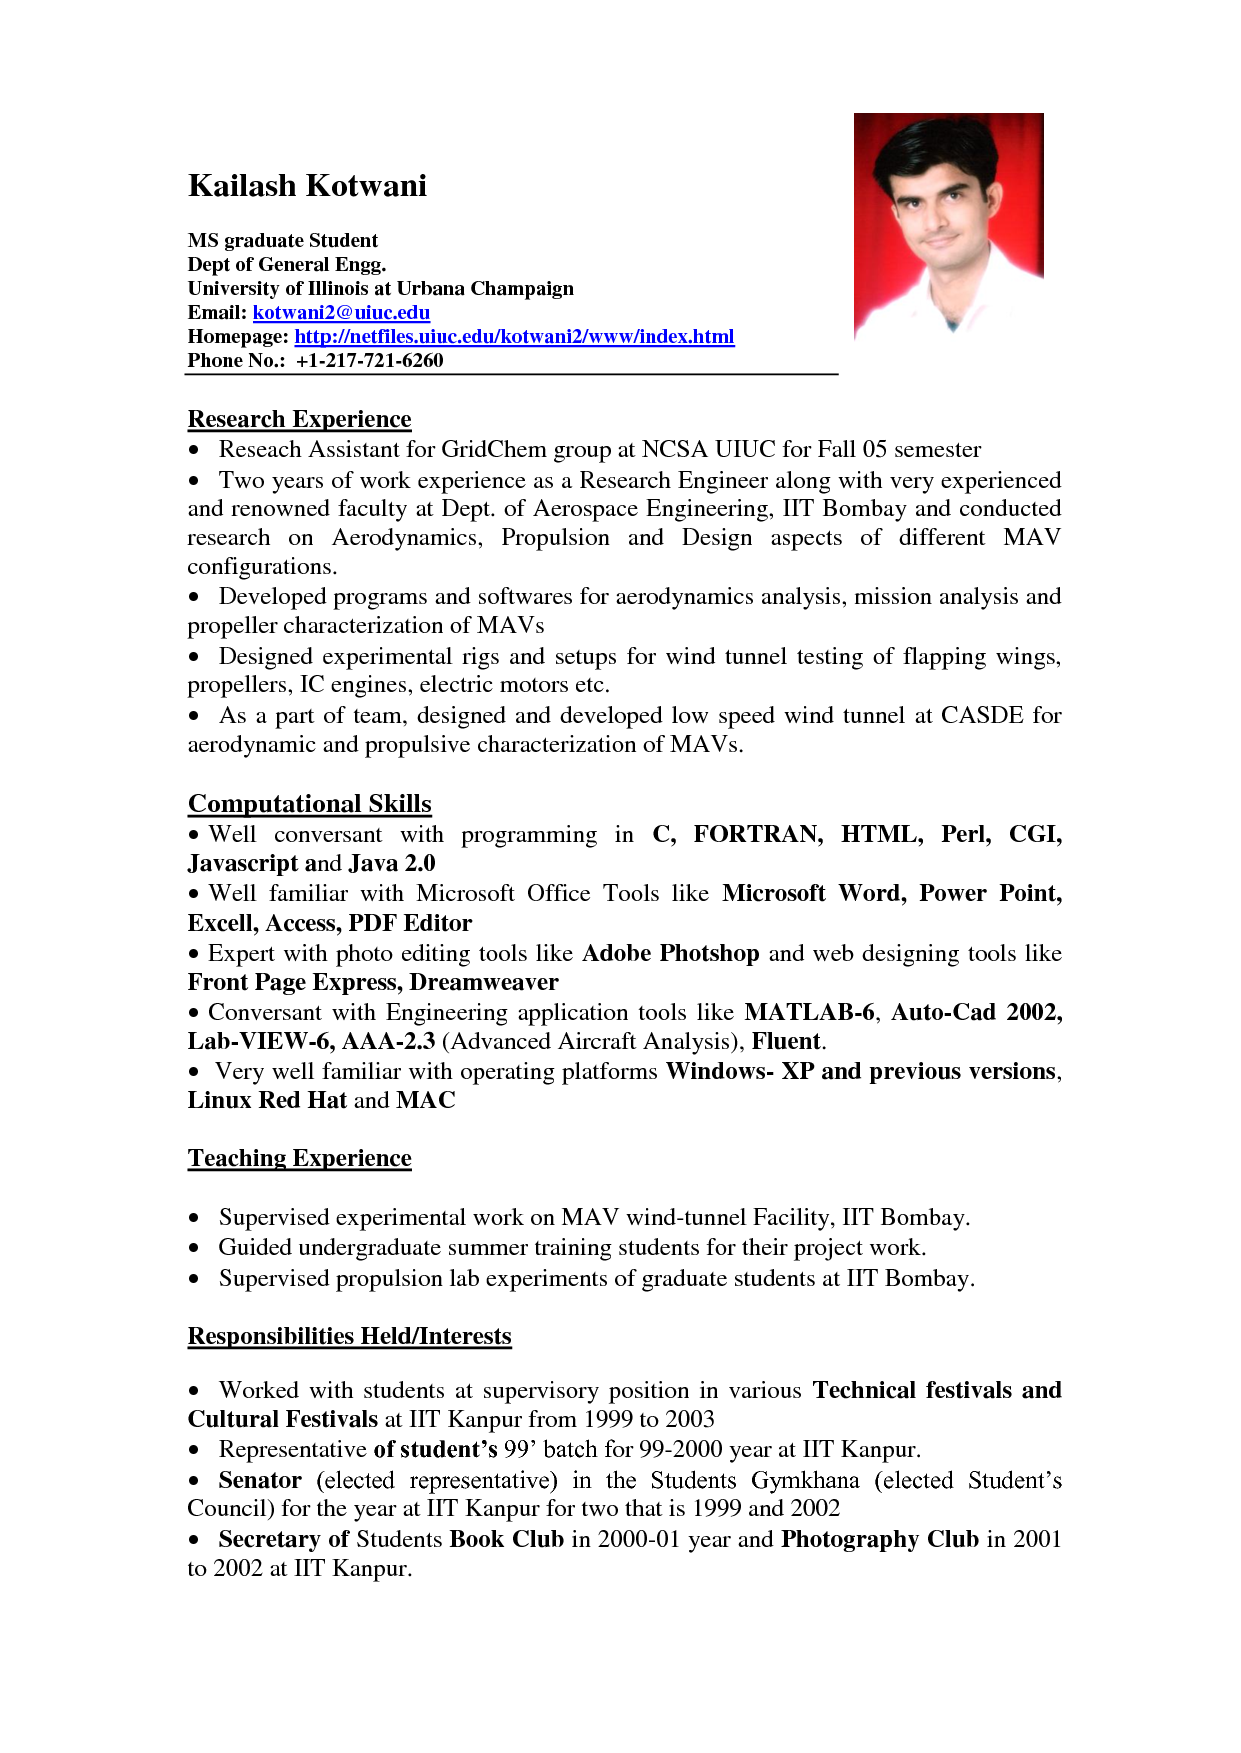 how to make a resume for first job in hindi